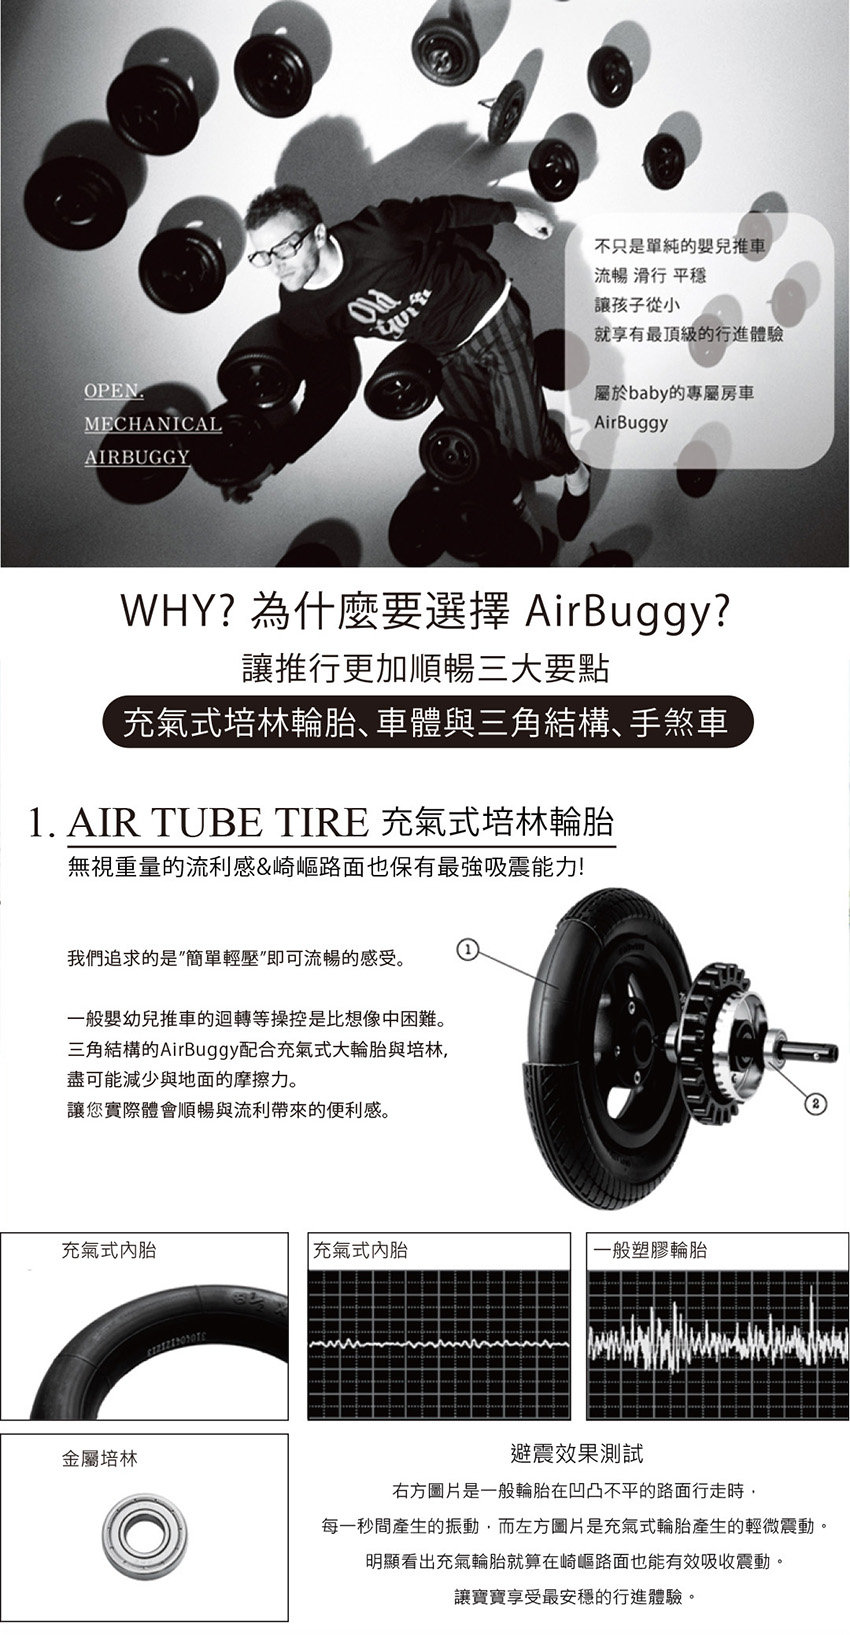 AirBuggy PREMIER SAFARI-3